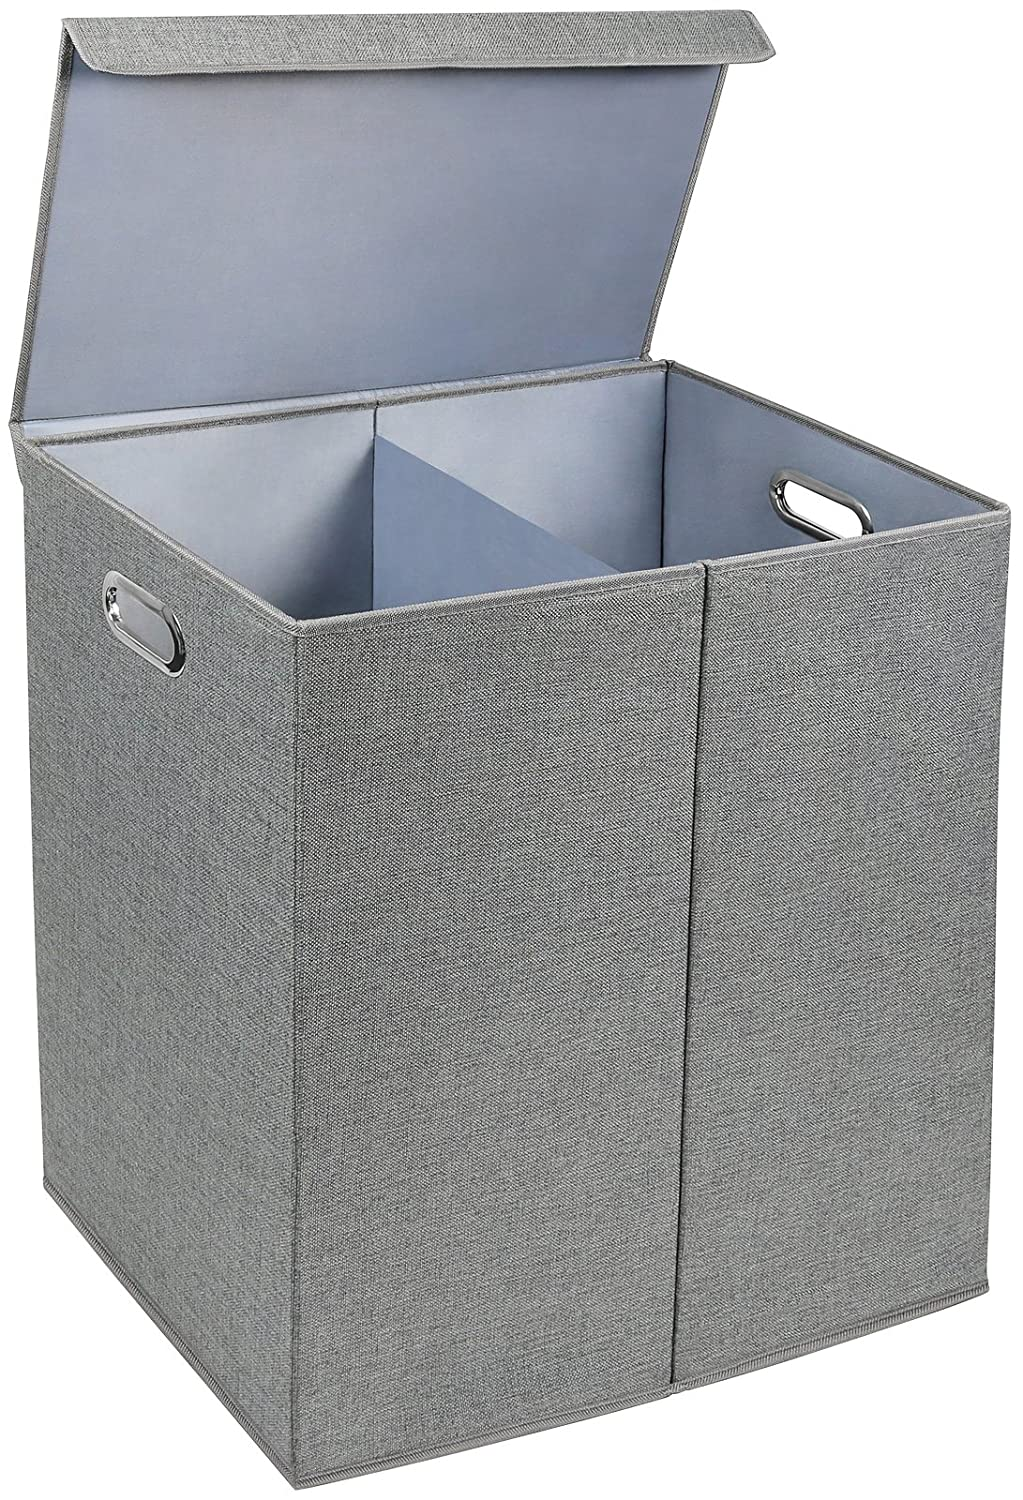 Greenco Nonwoven Foldable Double Hamper Laundry Sorter with Divider, Removable Cover Magnetic Lid Closure, Build in Side Carrying Handles – Gray GRC2869